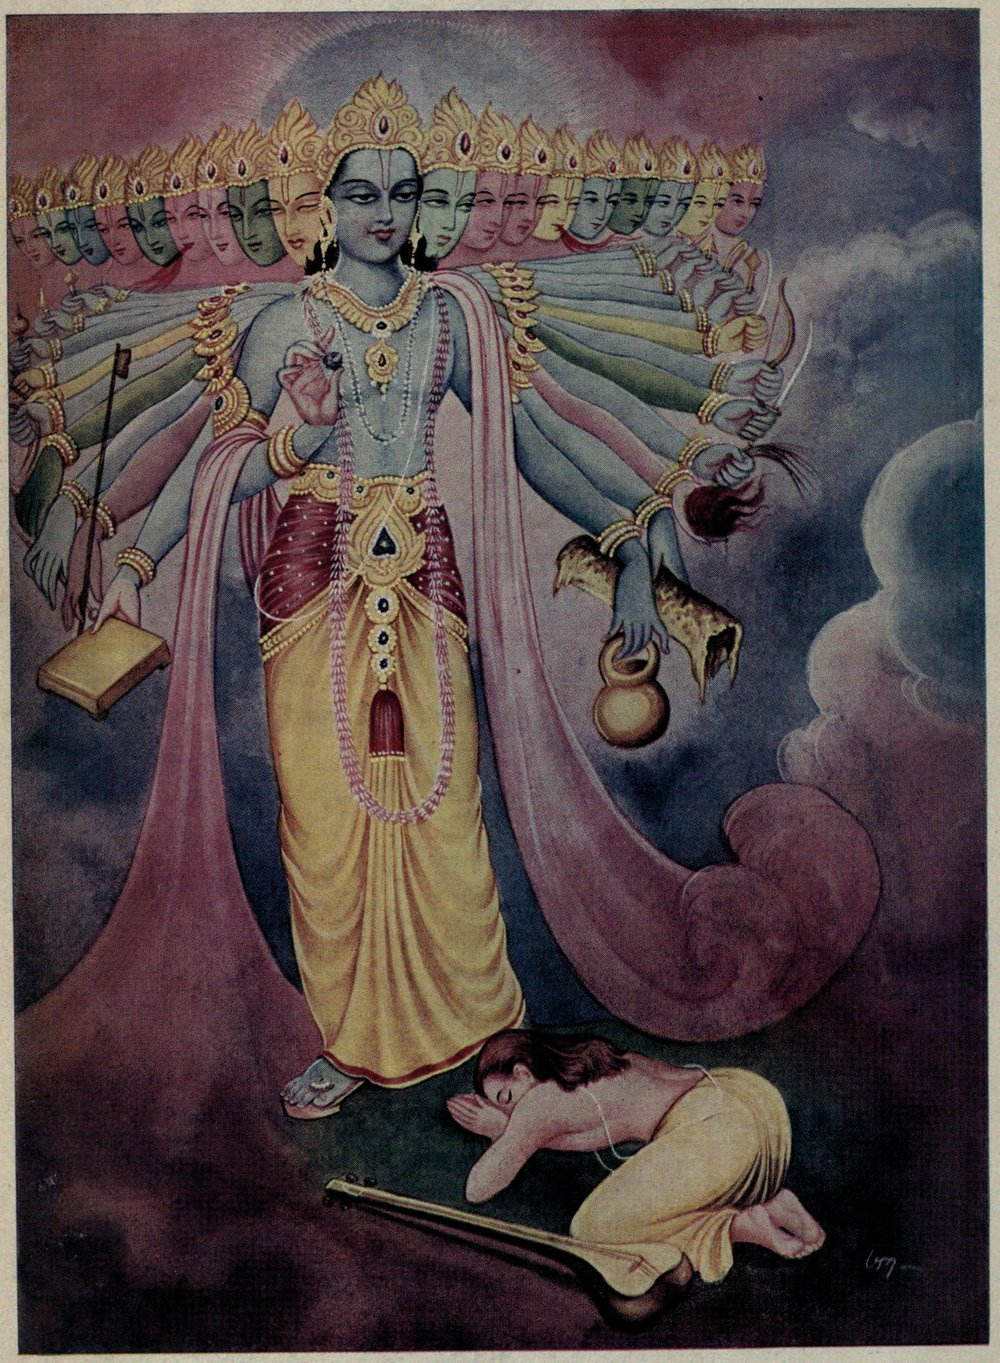 Narada_found_Vishnu_as_macroform.jpg